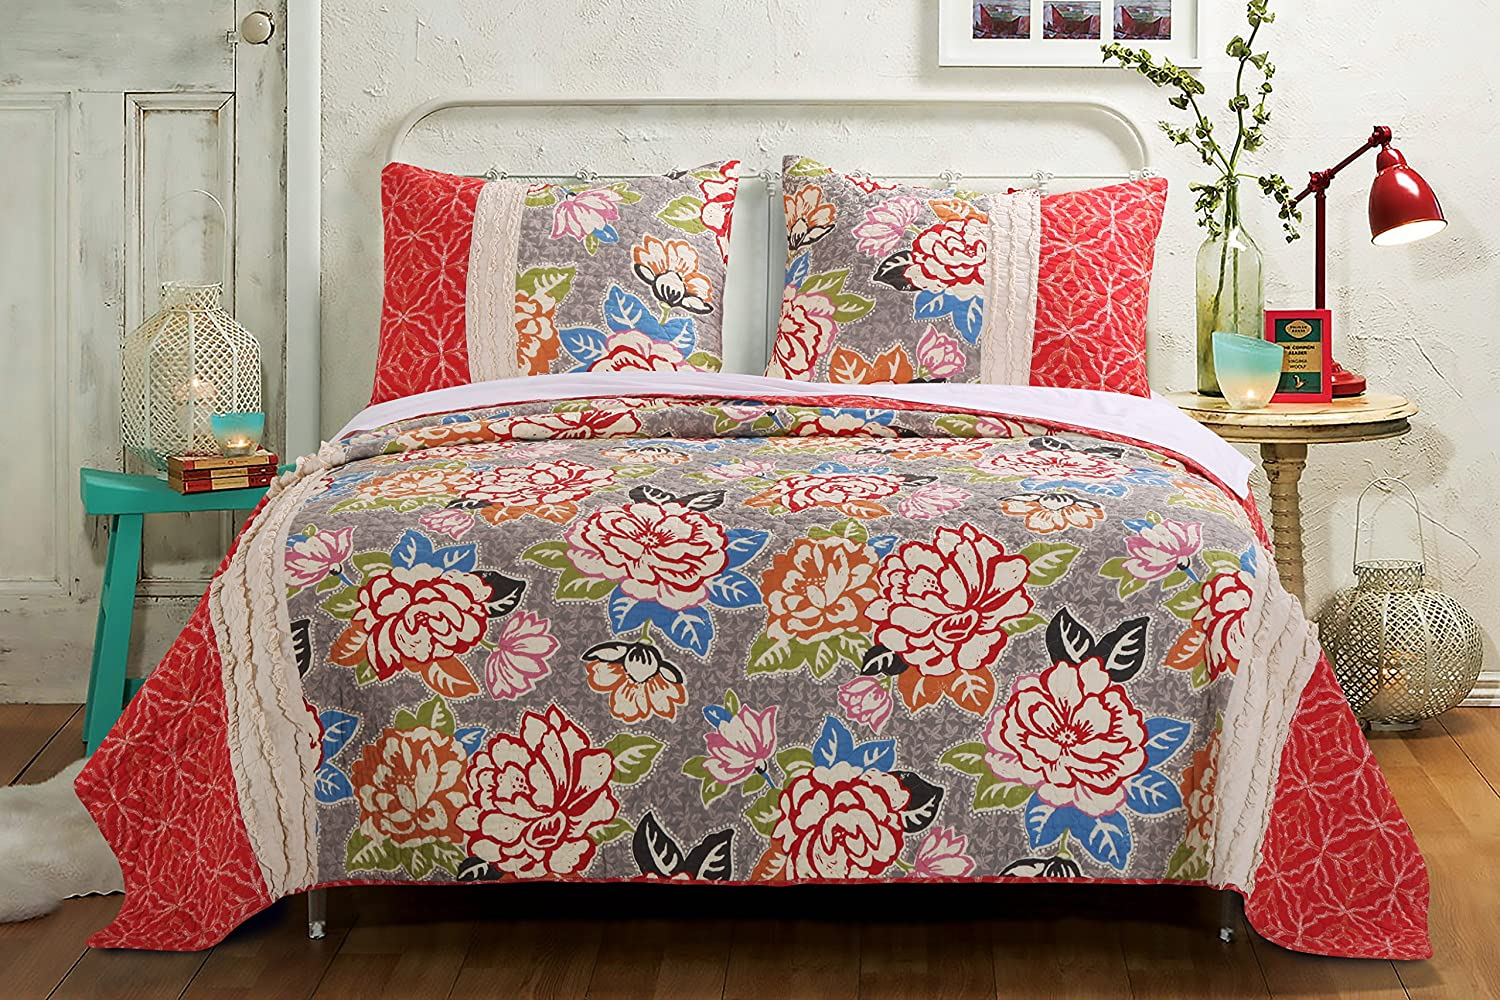 Barefoot Bungalow Gypsy pink Quilt Set, 3-Piece Full Queen, 4